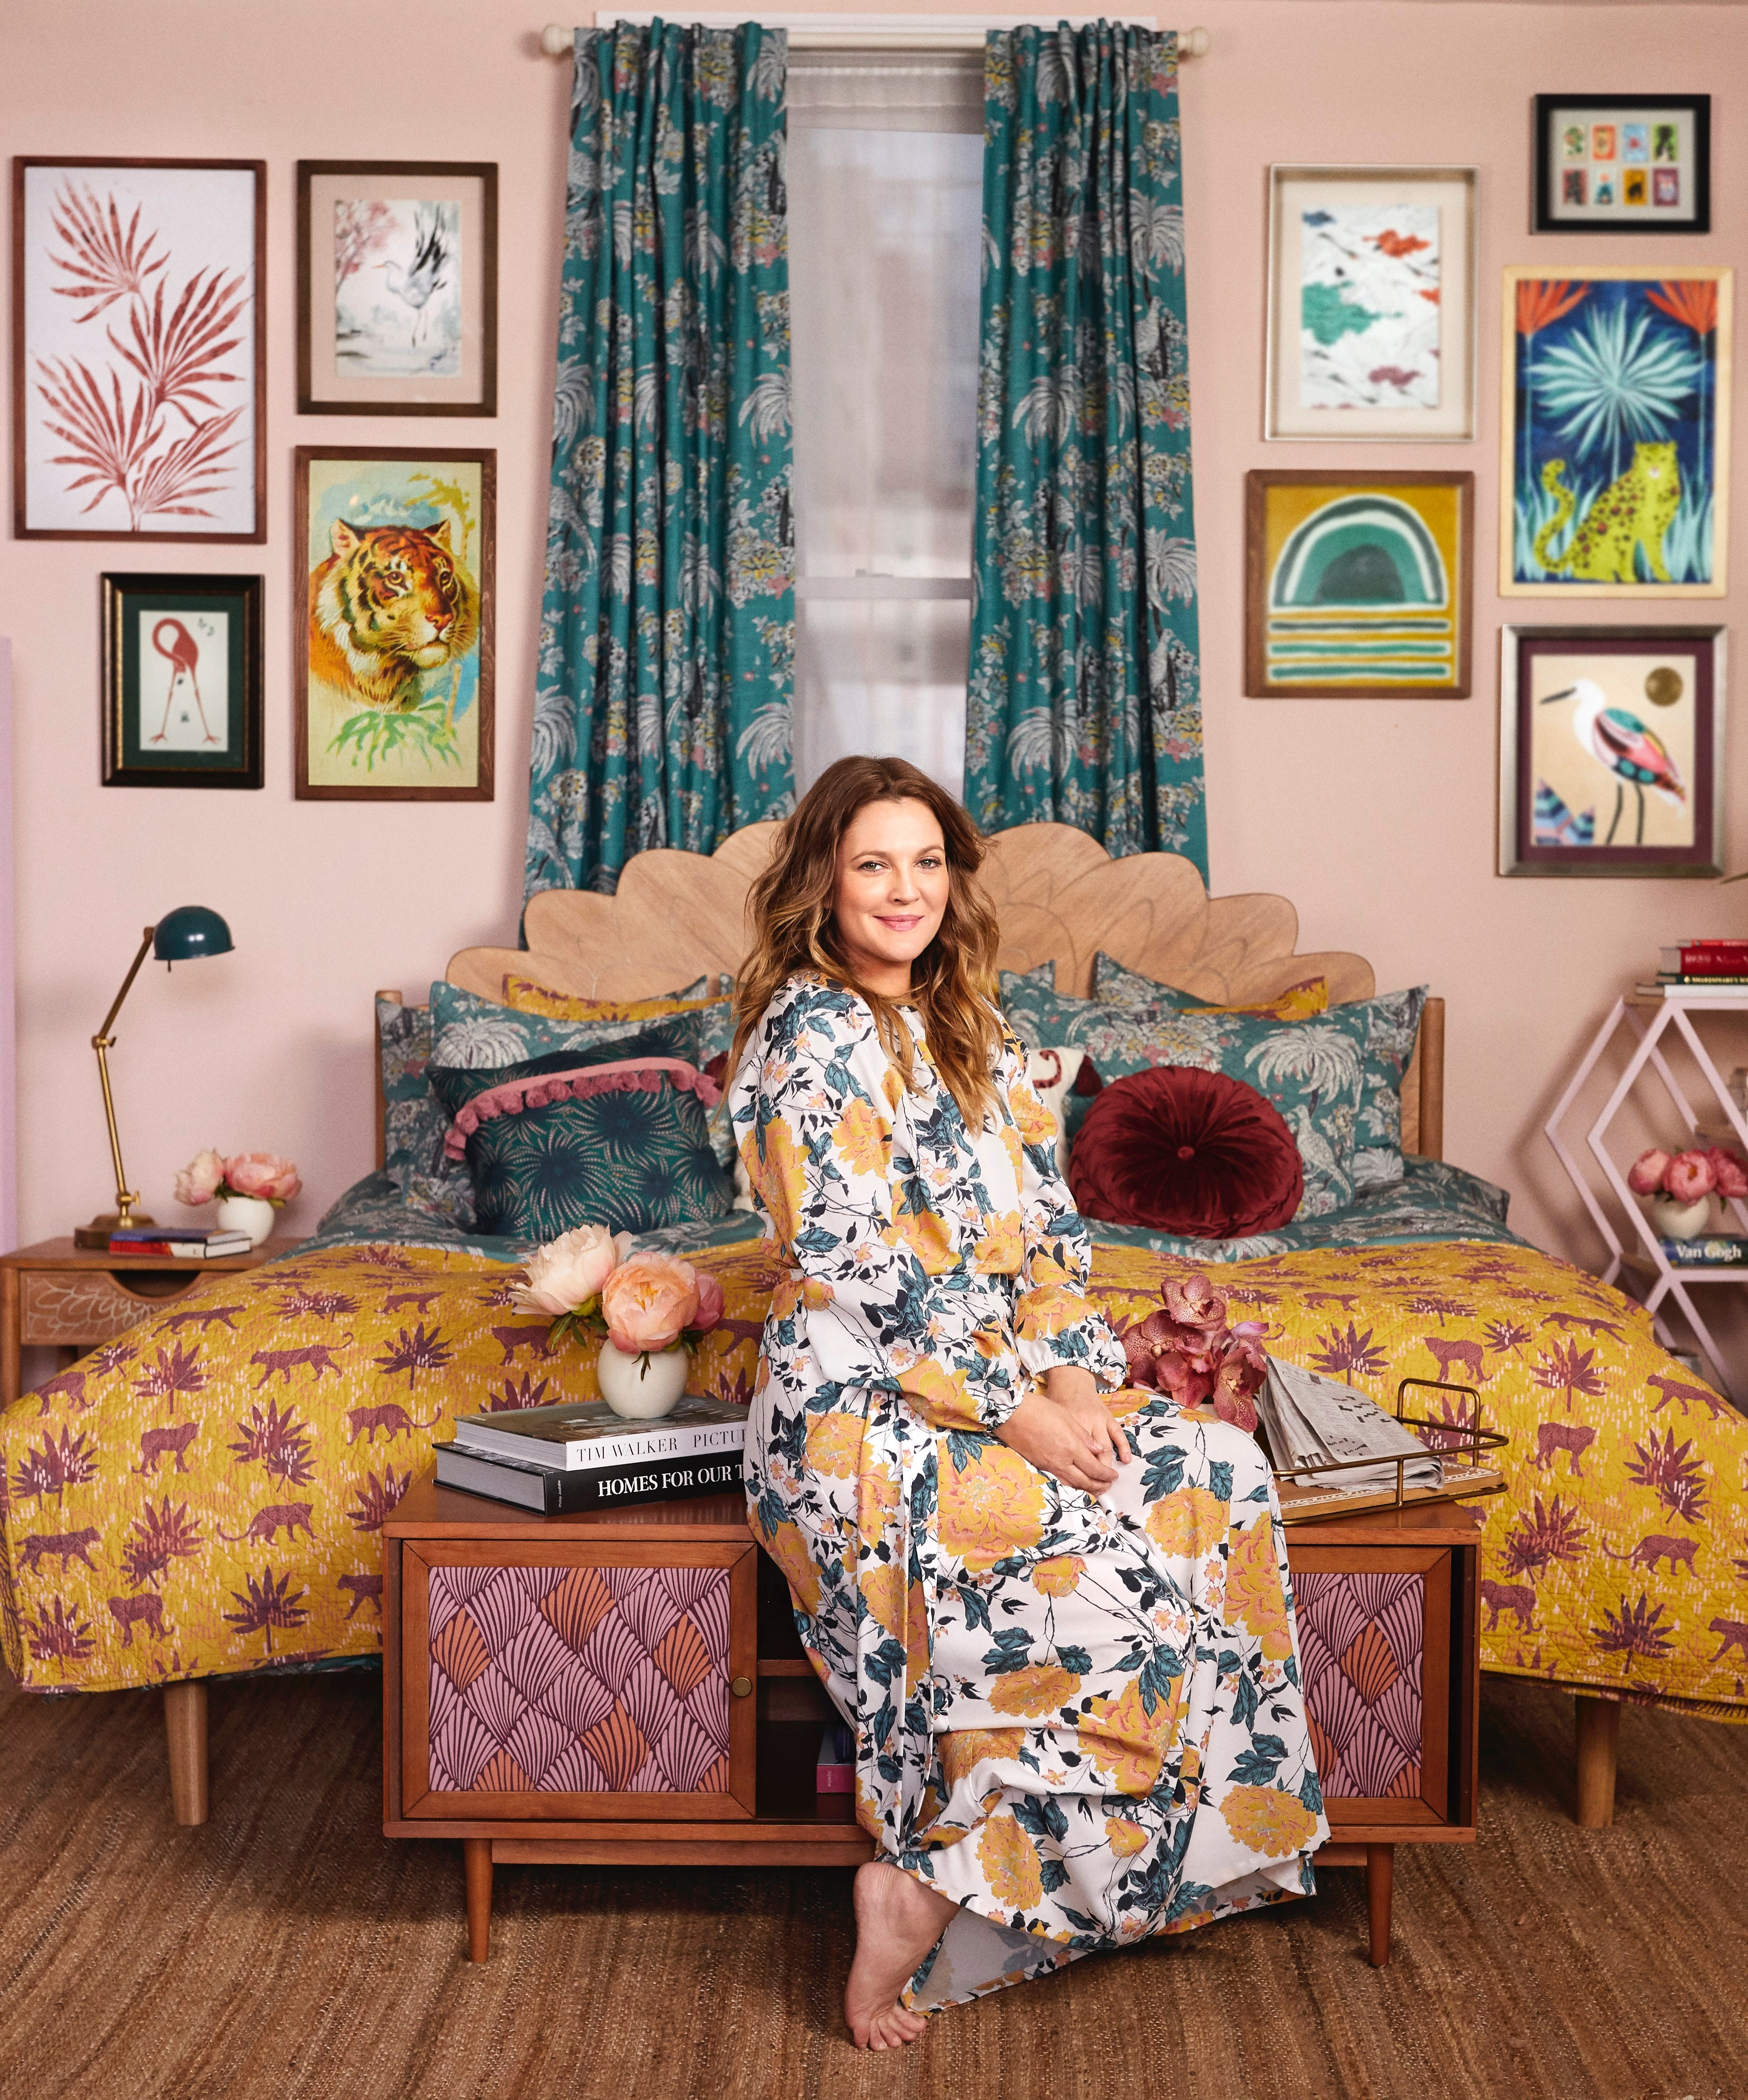 Drew Barrymore's Flower Home Fall Collection Features Three Smart Storage Solutions